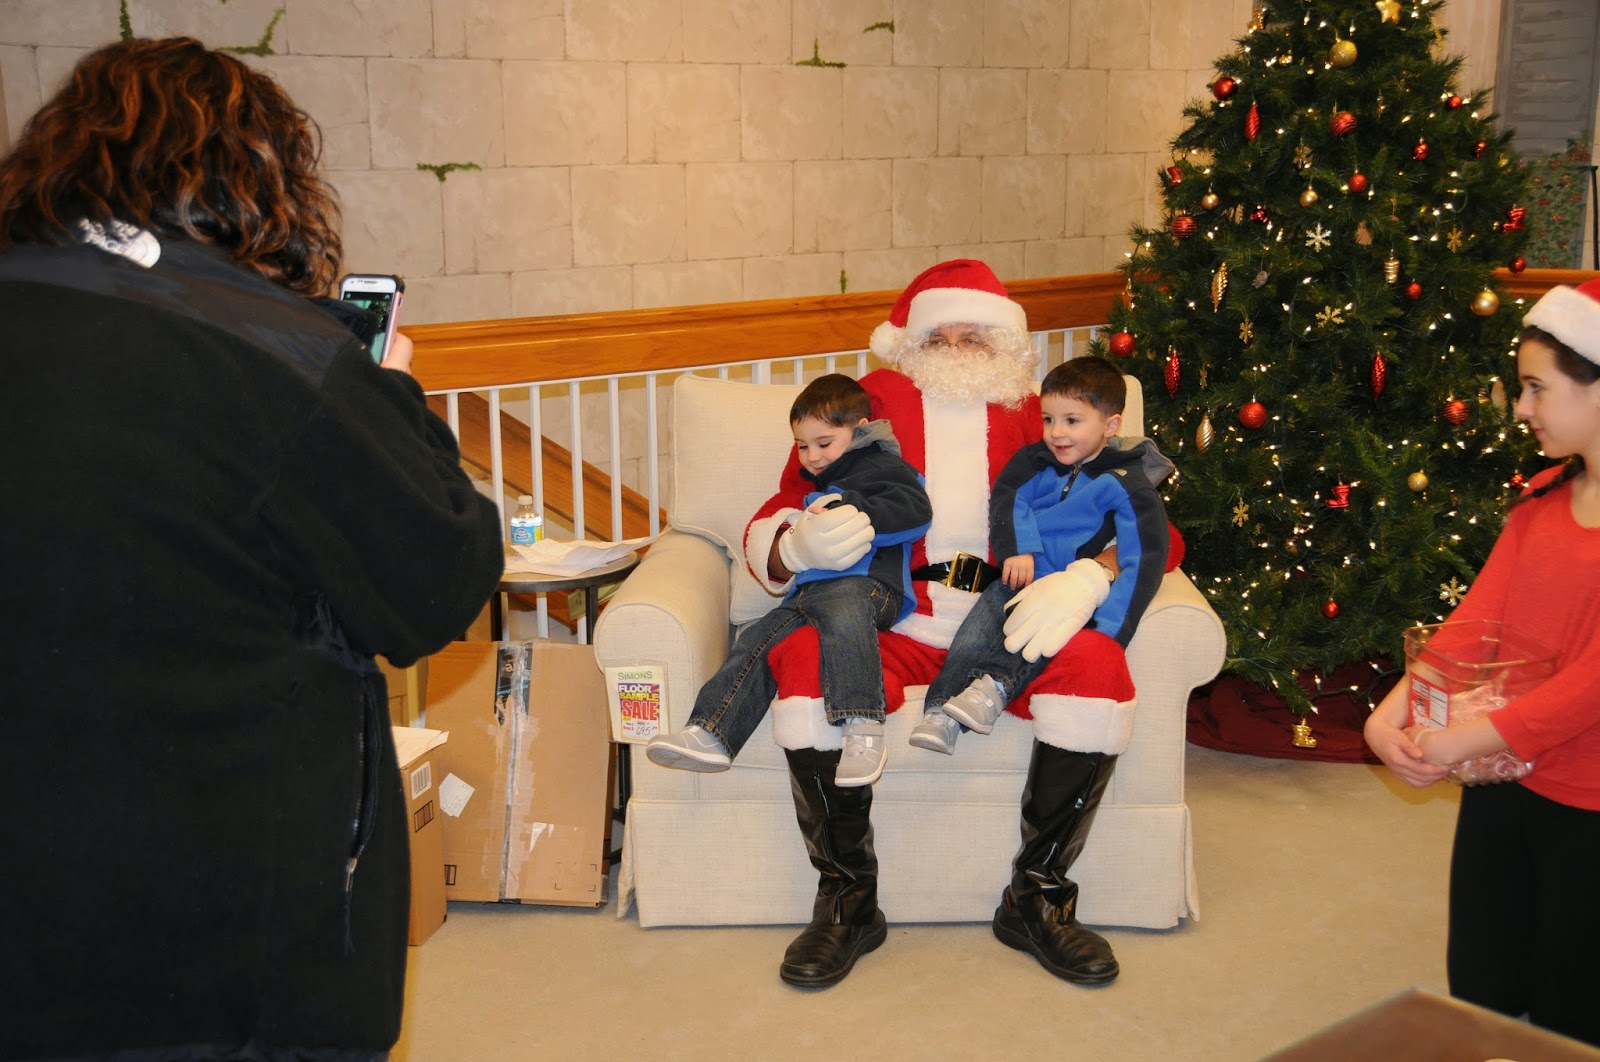 Franklin Downtown Partnership Festive Fun At The Holiday